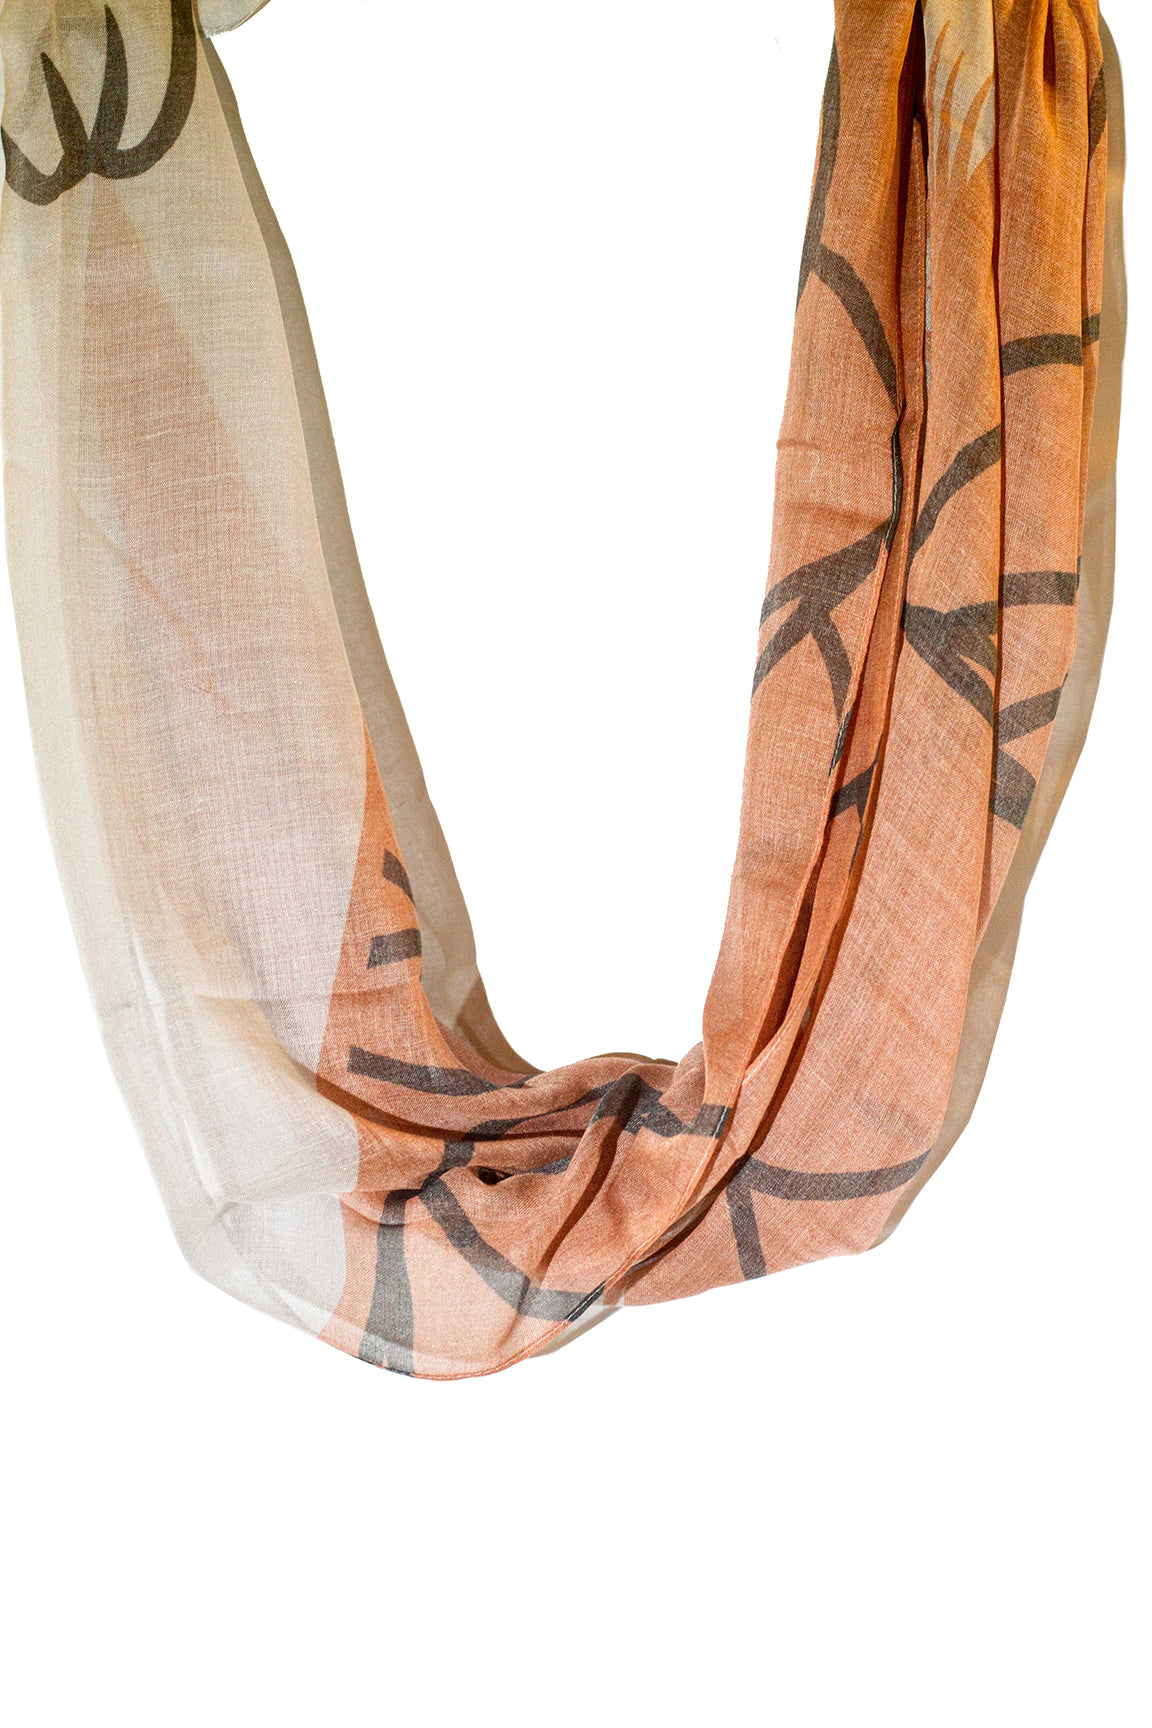 Naupaka Earth Women's Scarf